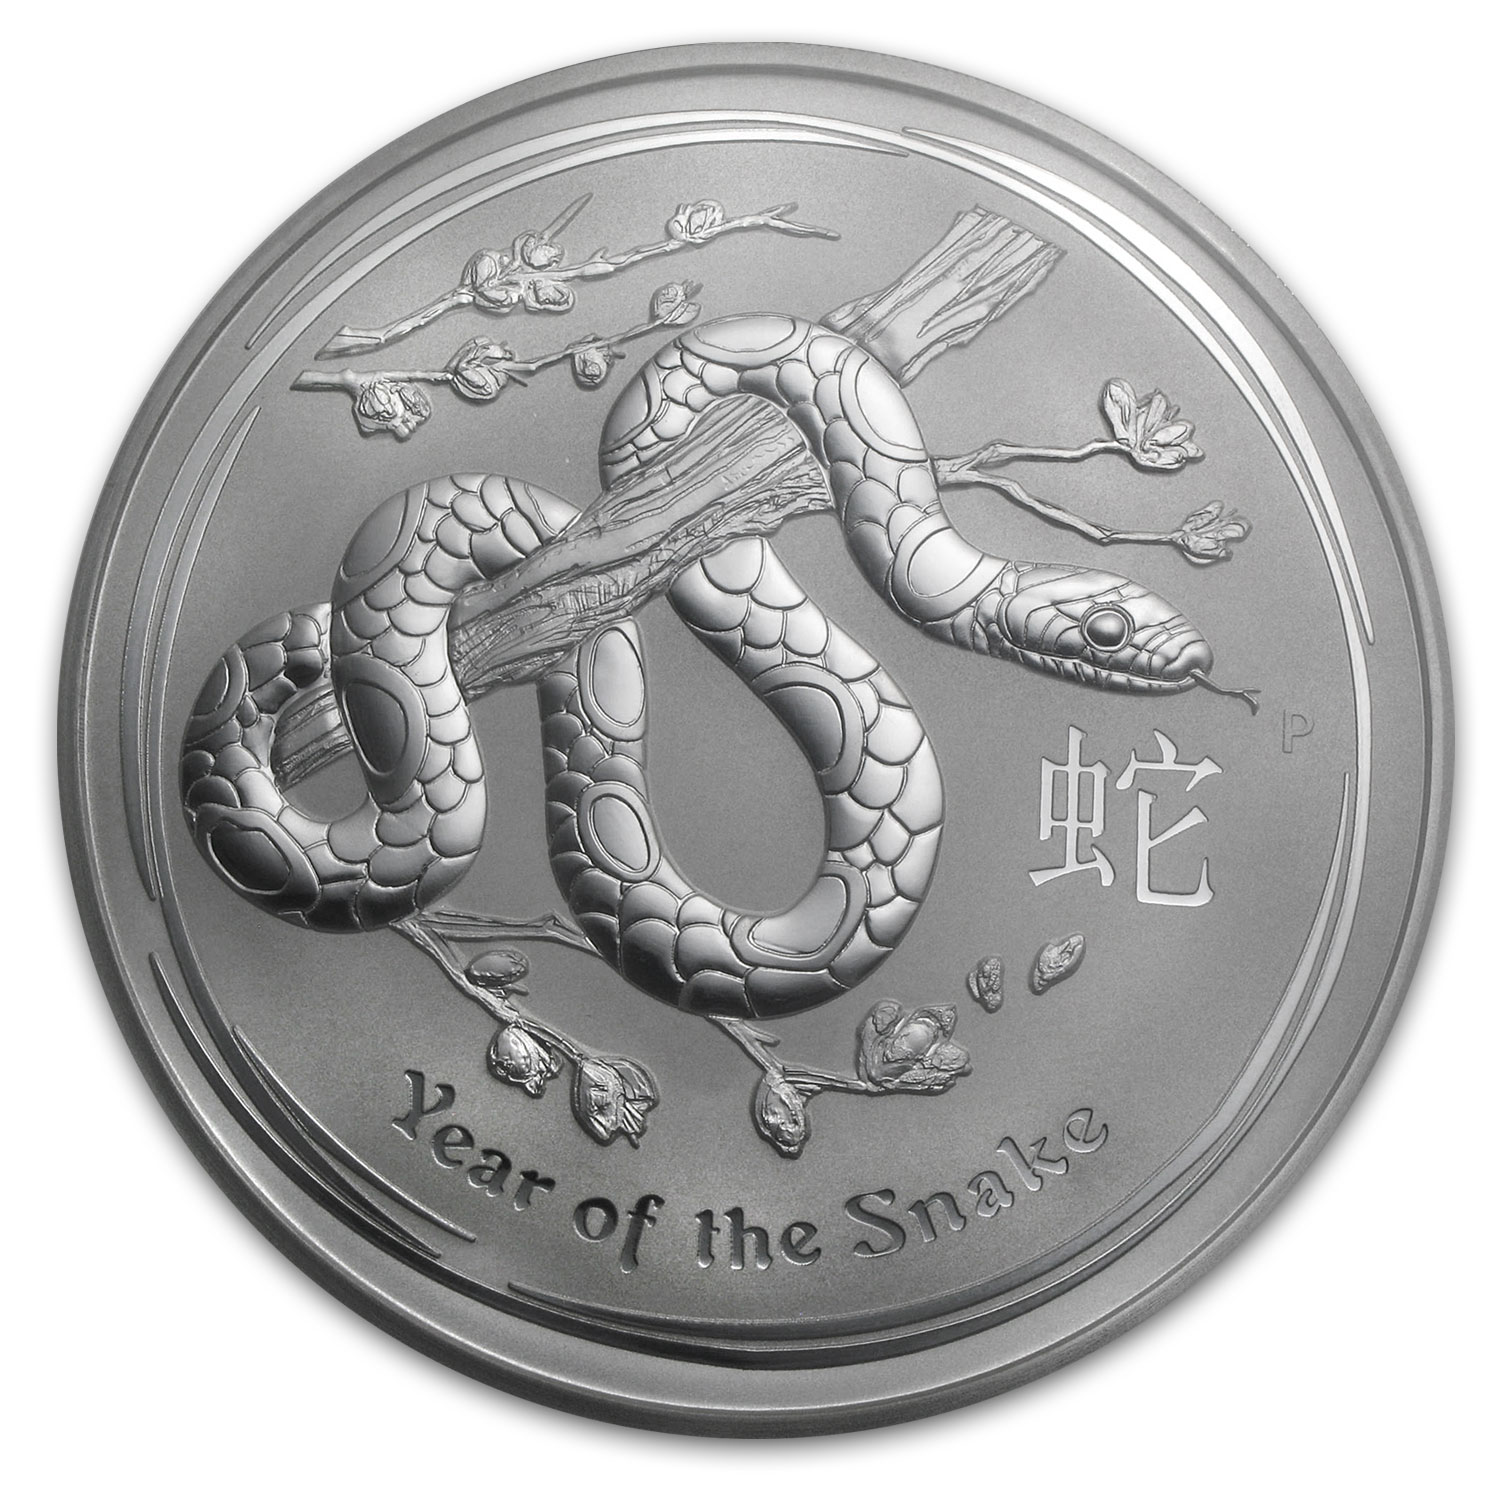 2013 1 Kilo 32.15 oz Silver Year of the Snake (SII) NGC MS-69